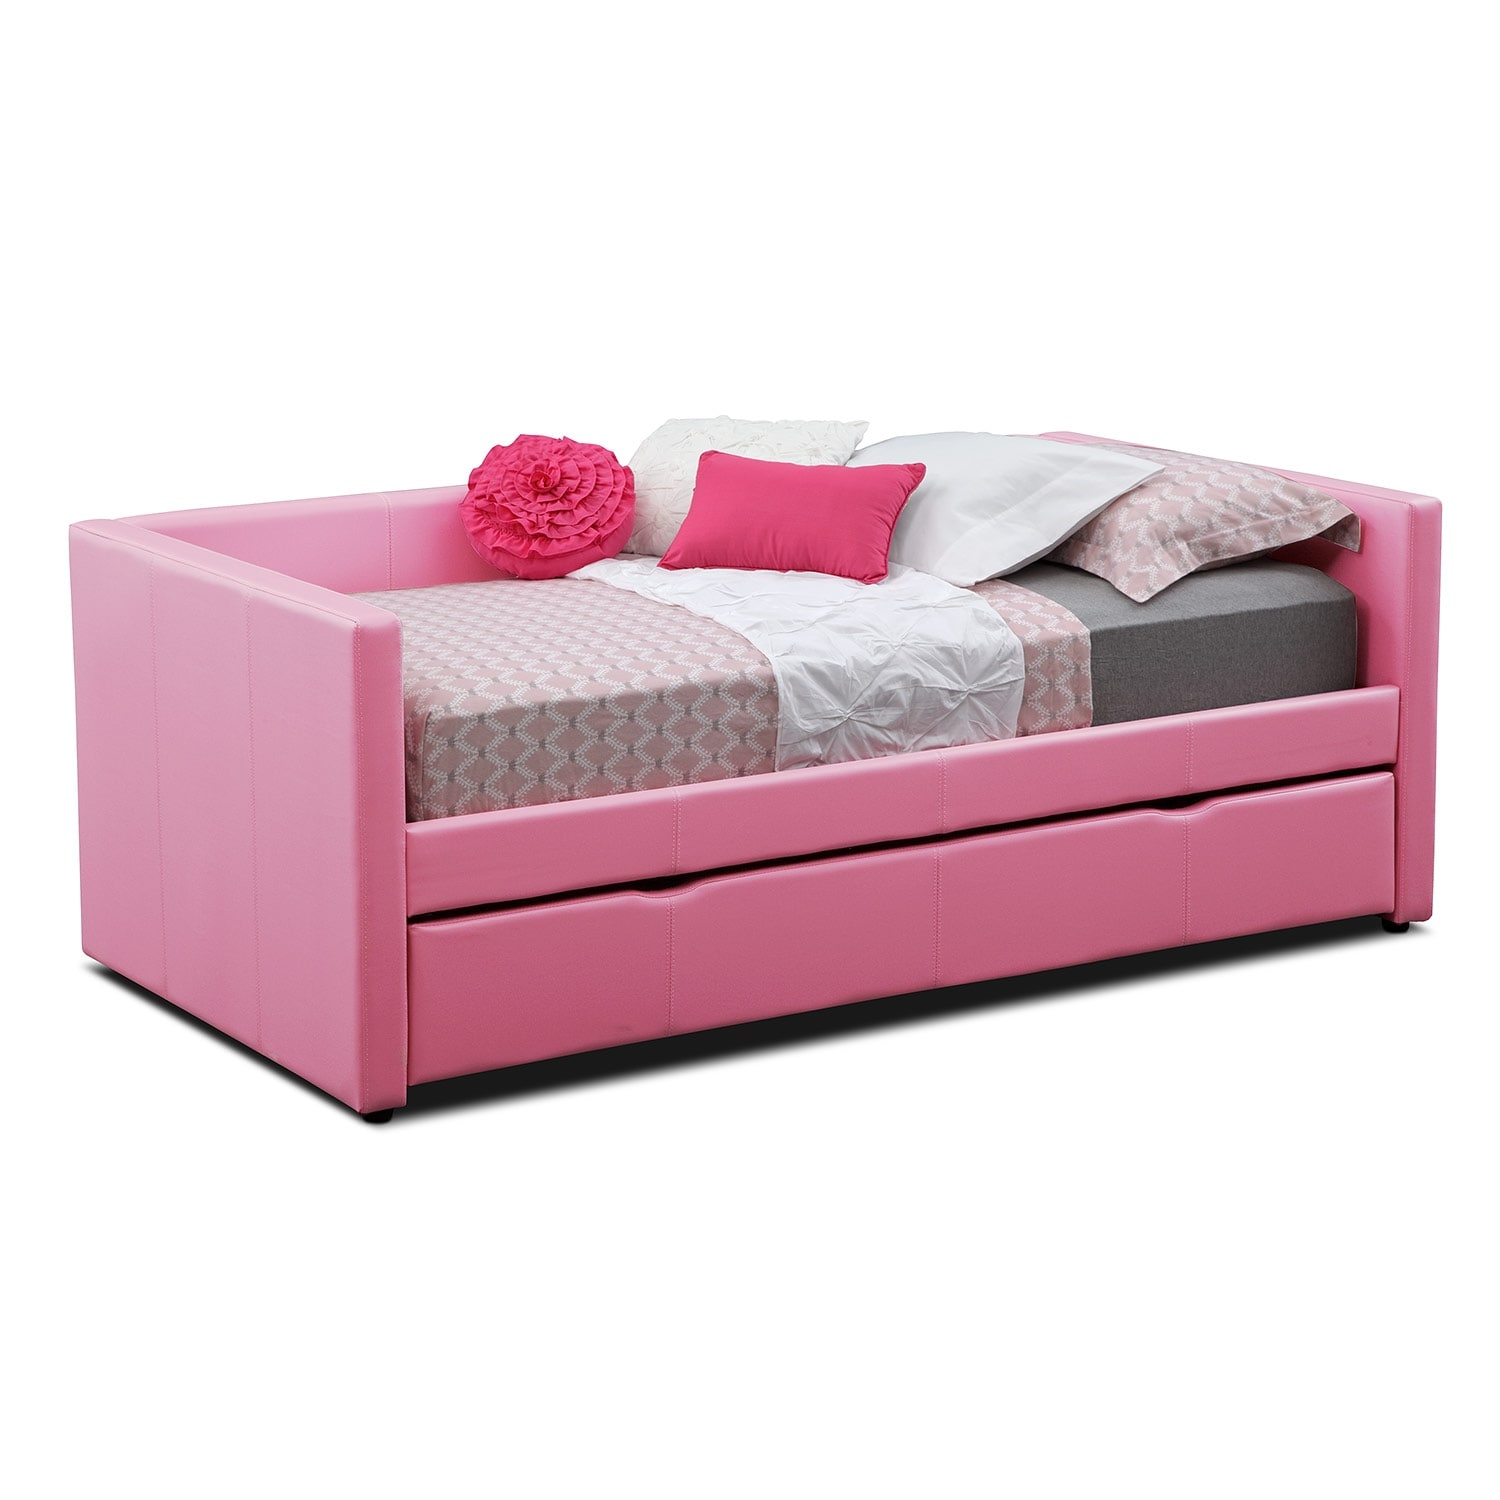 Kids Furniture - Carey Twin Daybed with Trundle - Pink